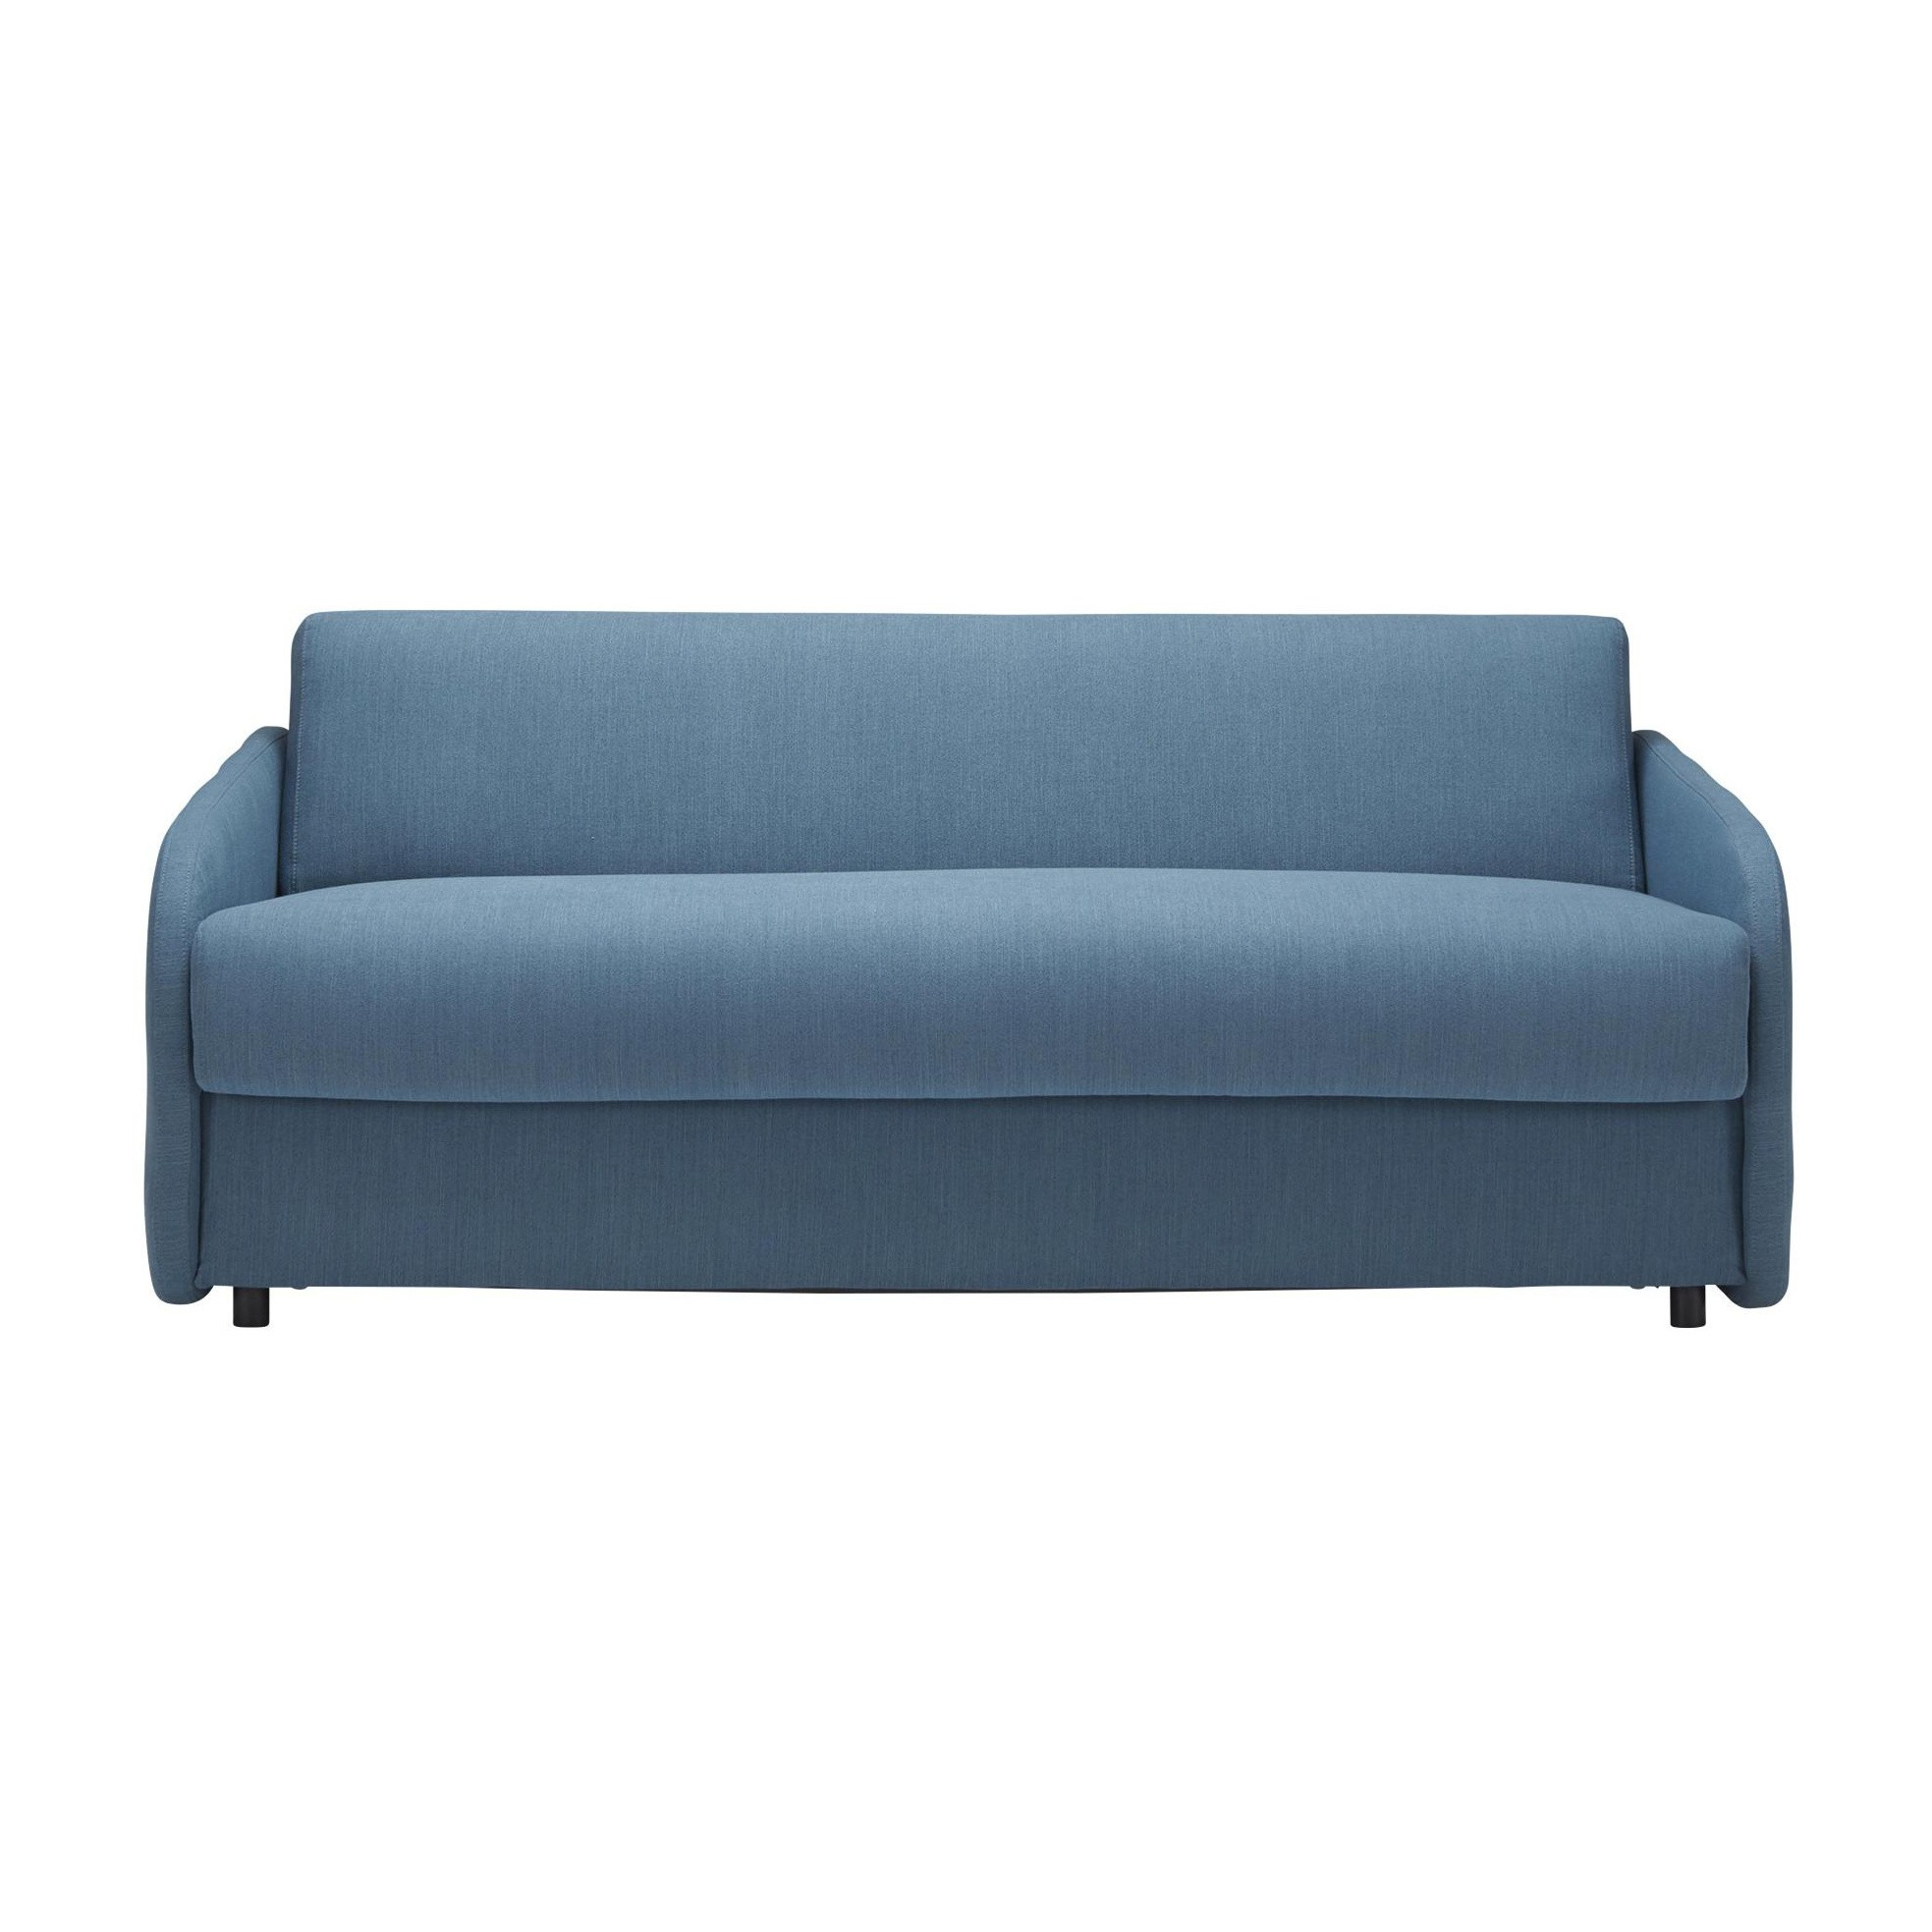 Innovation Eivor Sofa Bed With Mattress Petrol Fabric 519 Elegance Freon